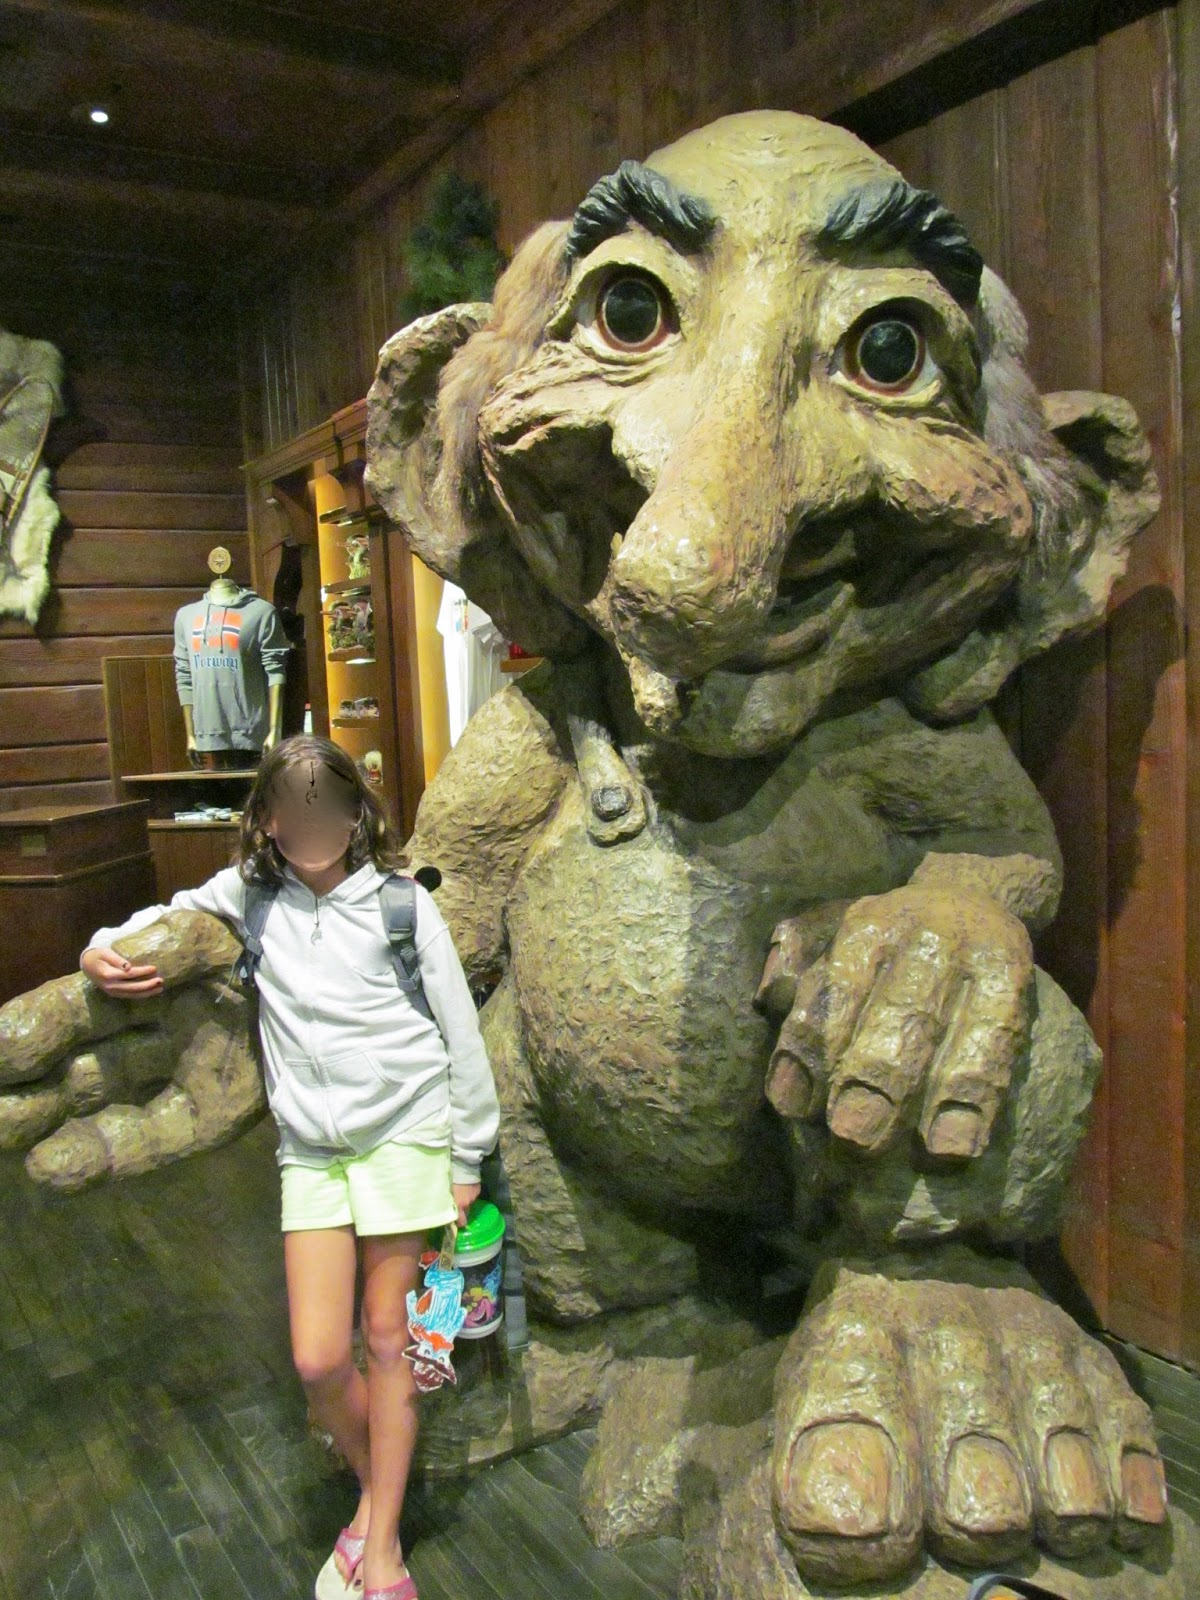 The Giant Troll in Norway -Epcot at the Walt Disney World Resort - Orlando, FL - Ouroutdoortravels.blogspot.com